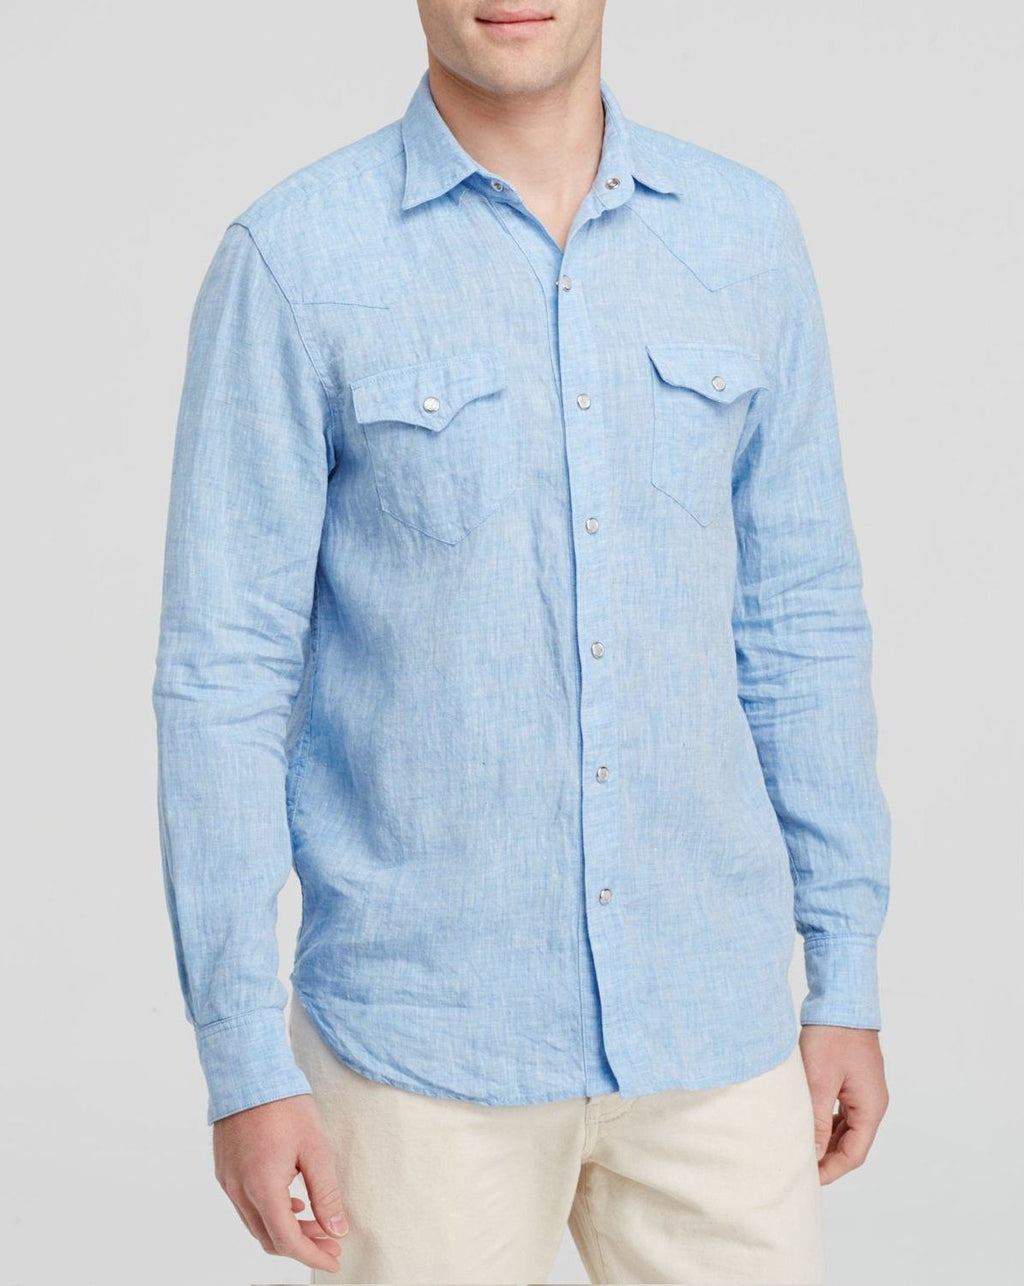 Freemans Sporting Club Men's Blue Western Button Down Shirt - Regular Fit